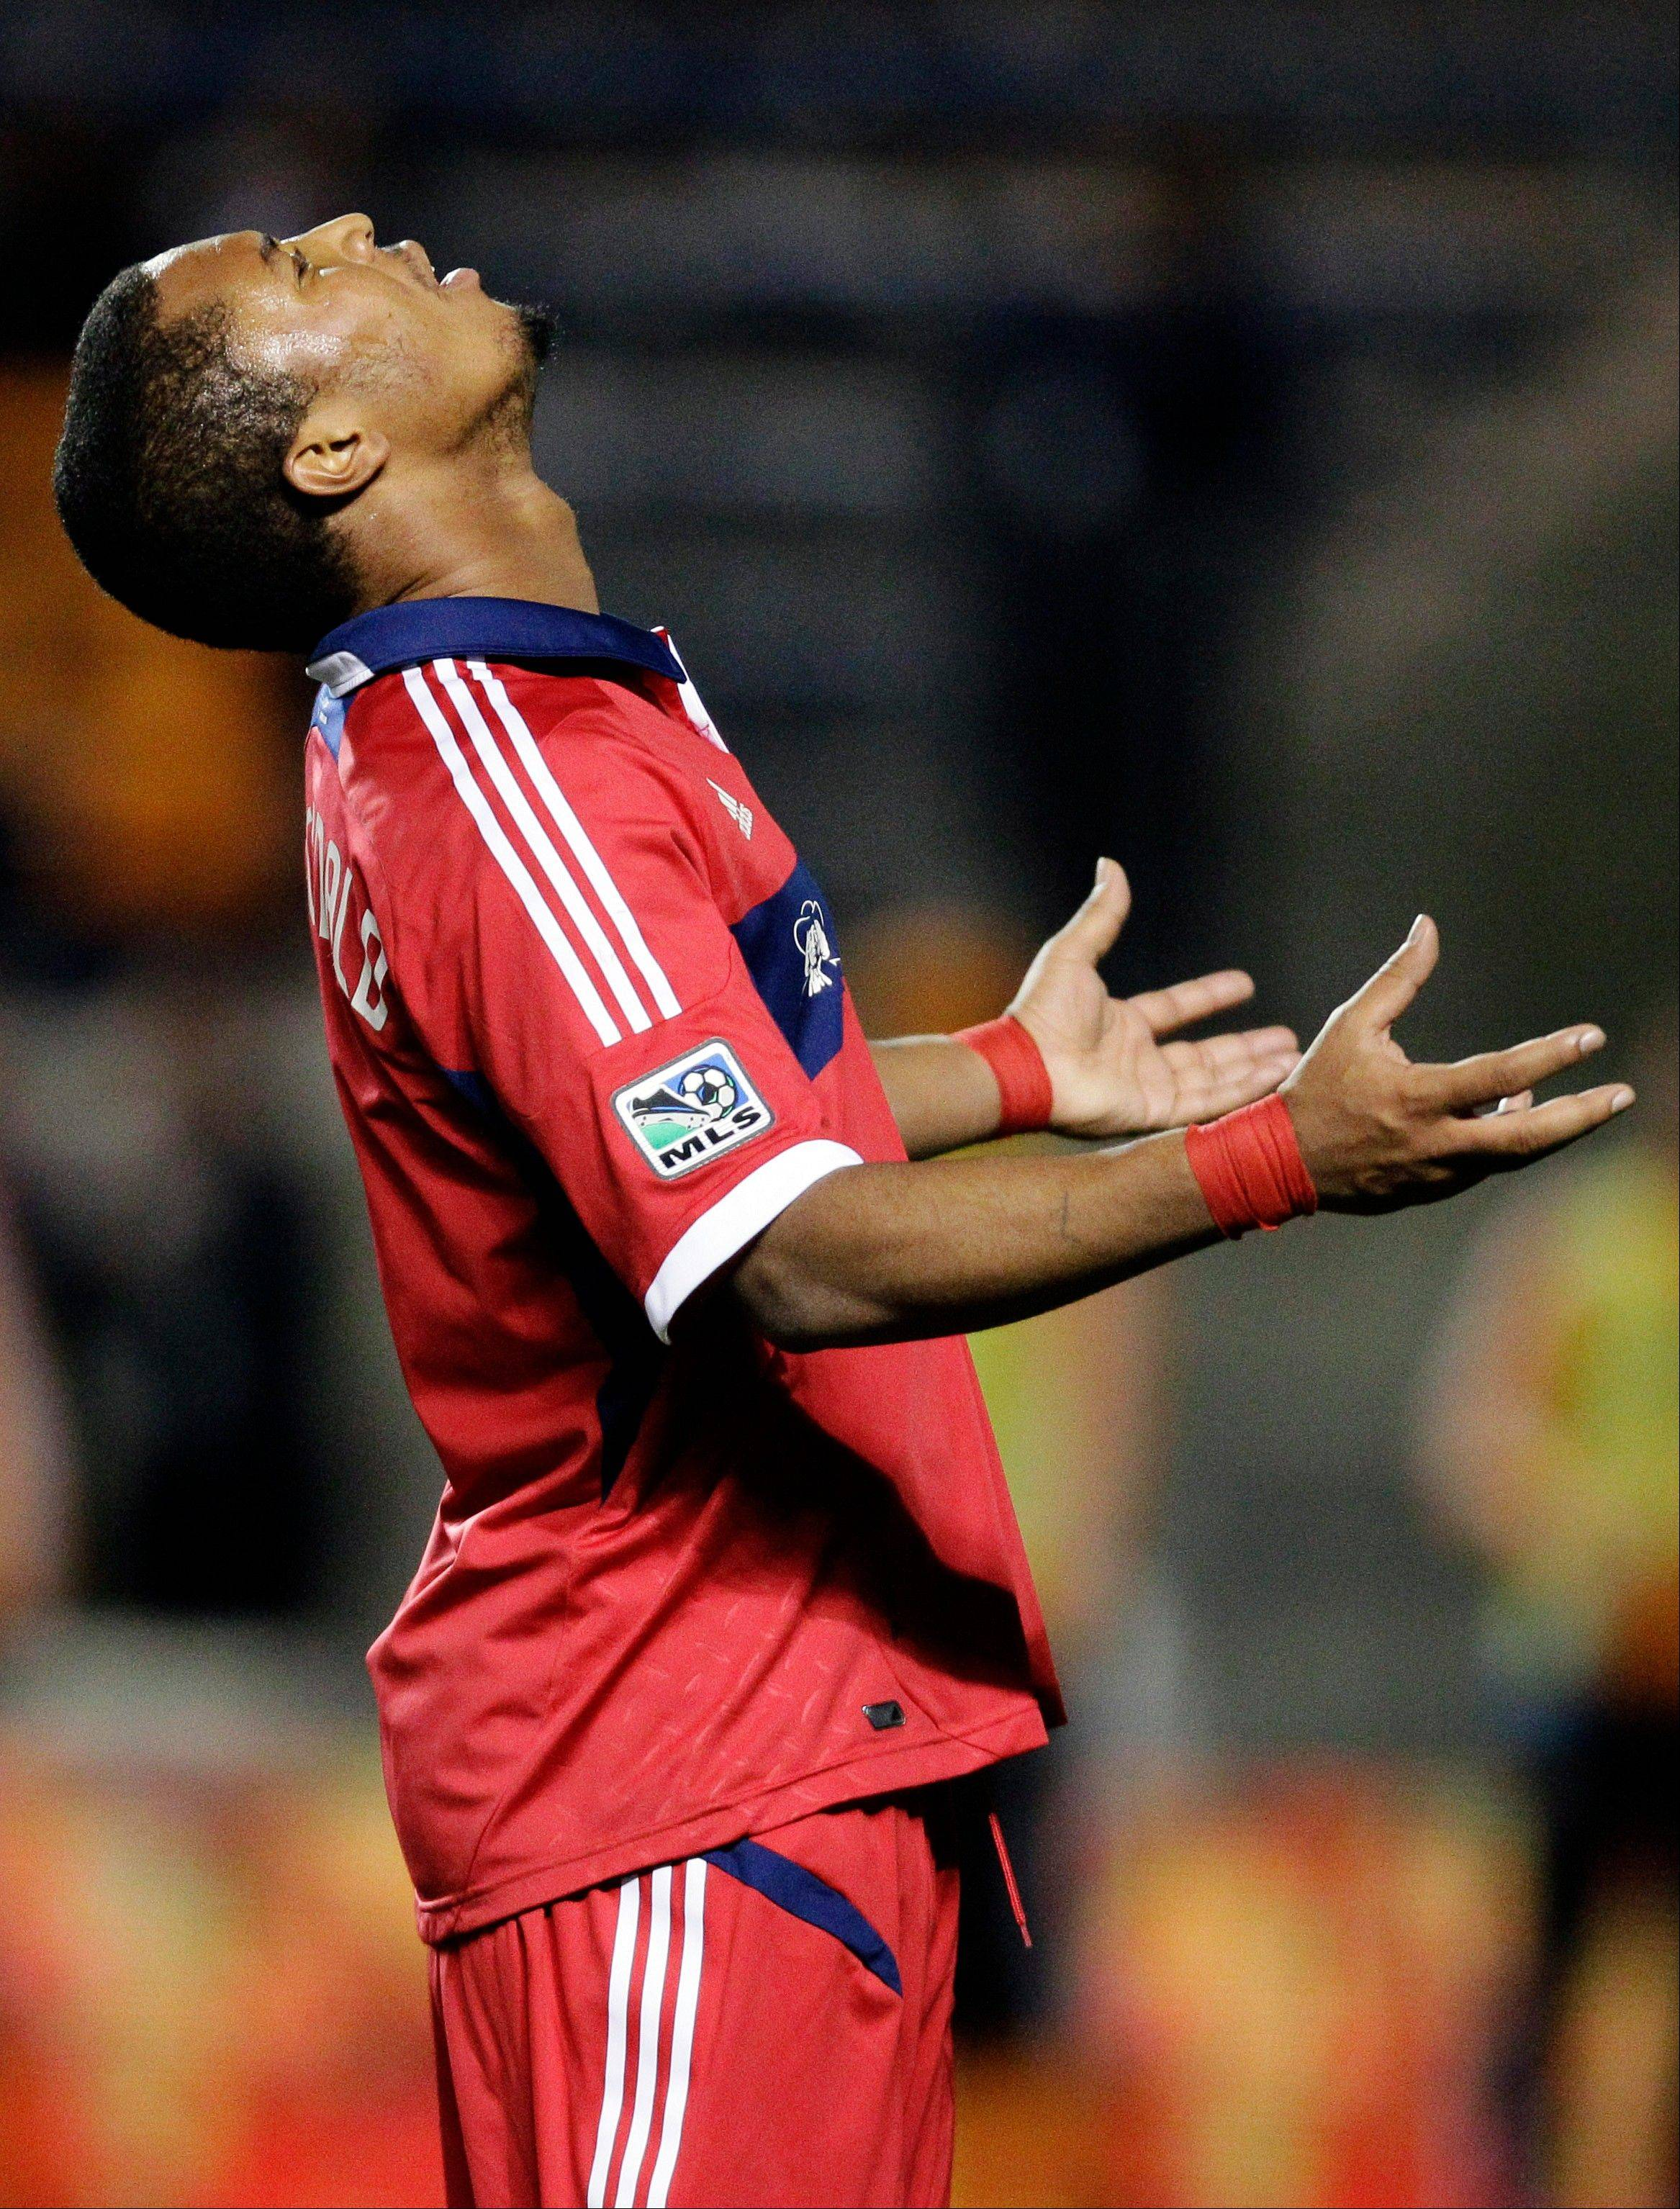 Chicago Fire forward Sherjill MacDonald (7) reacts after missing a pass against the Houston Dynamo during the second half of their MLS soccer playoff match, Wednesday, Oct. 31, 2012, in Bridgeview, Ill. Houston won 2-1.